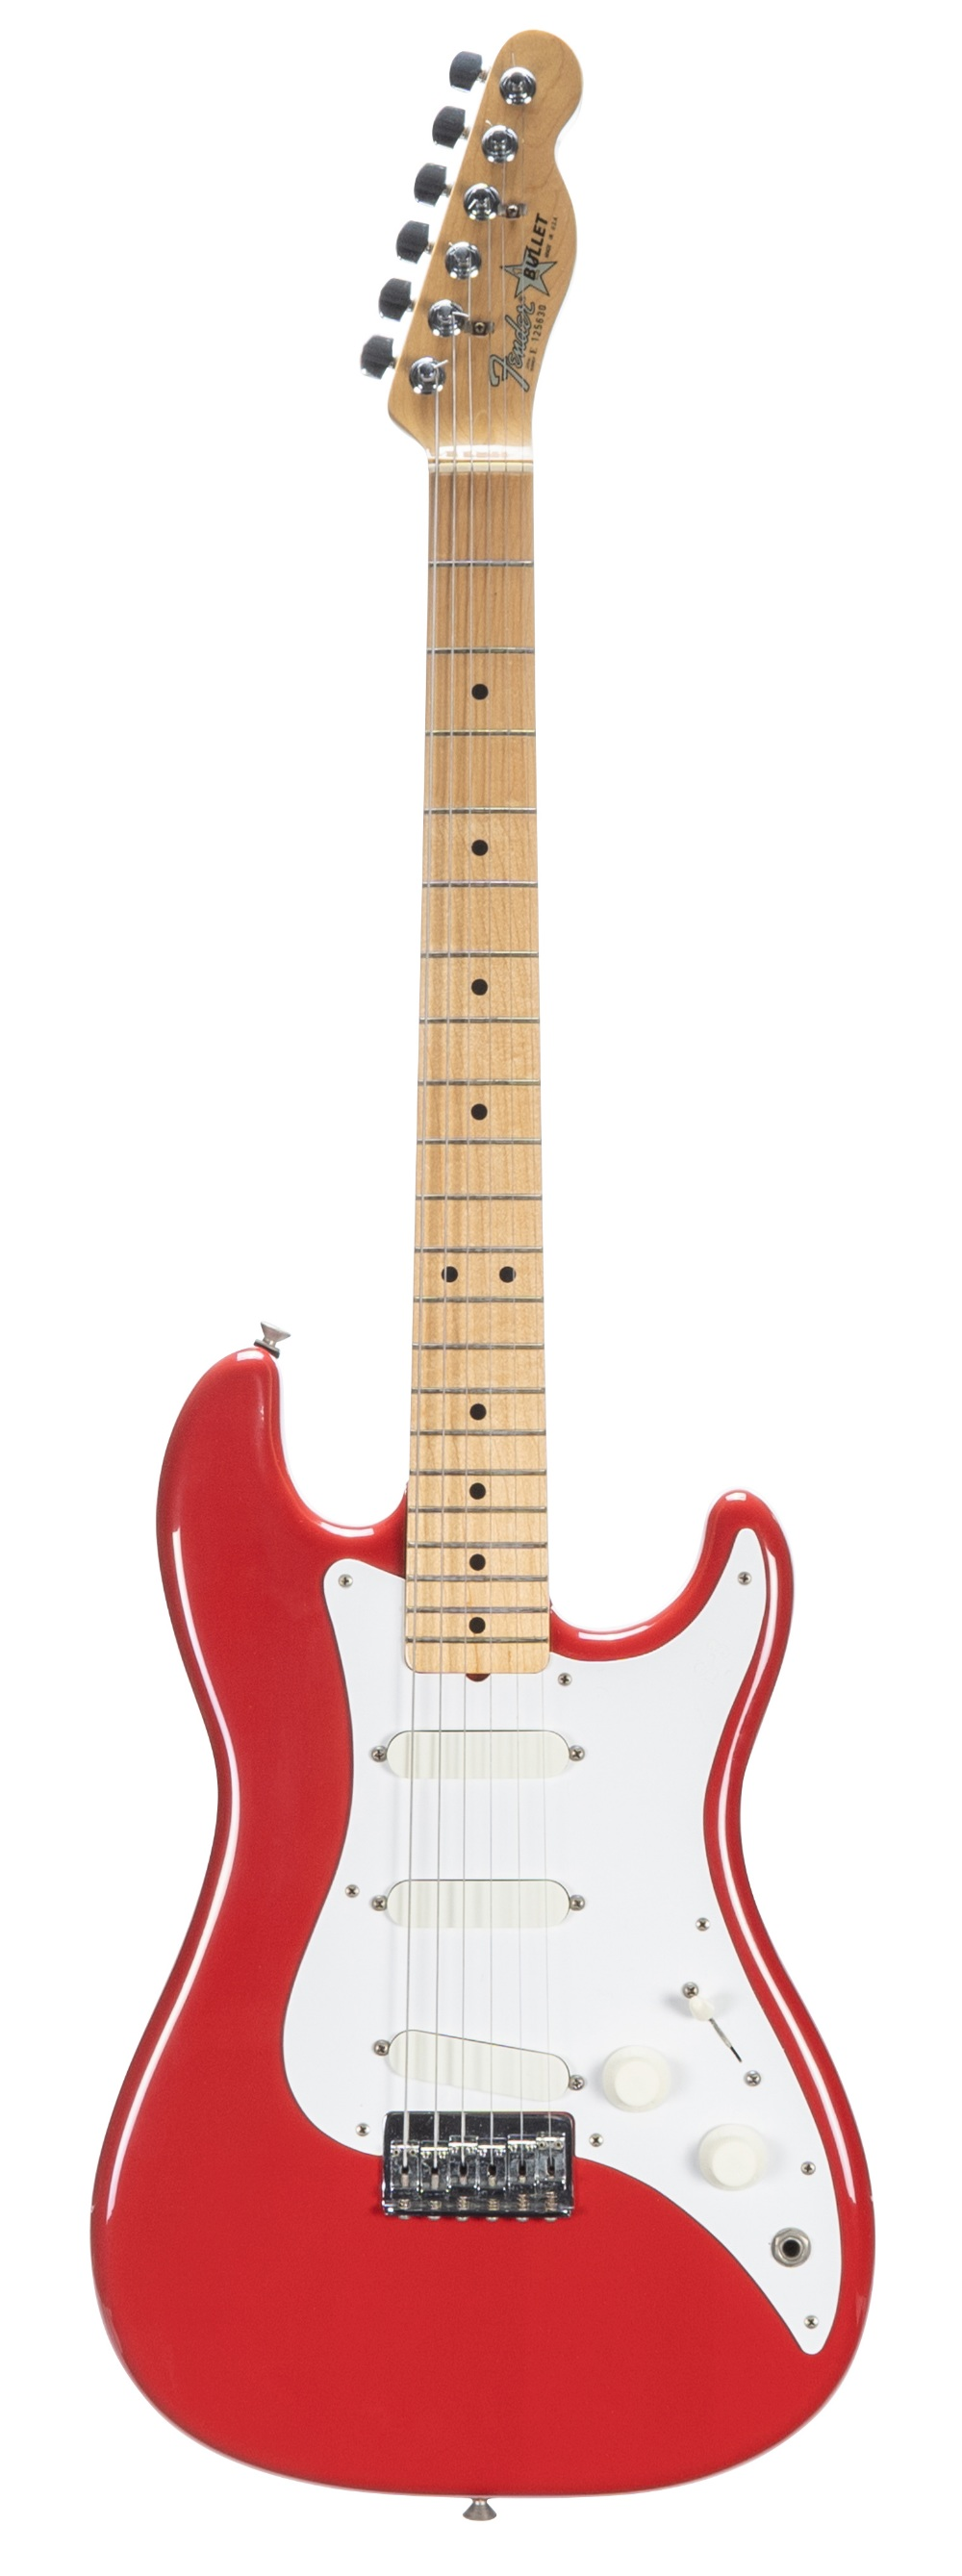 1981 Fender S-3 Bullet electric guitar, made in USA, ser. no. E1xxx30; Finish: red, light surface